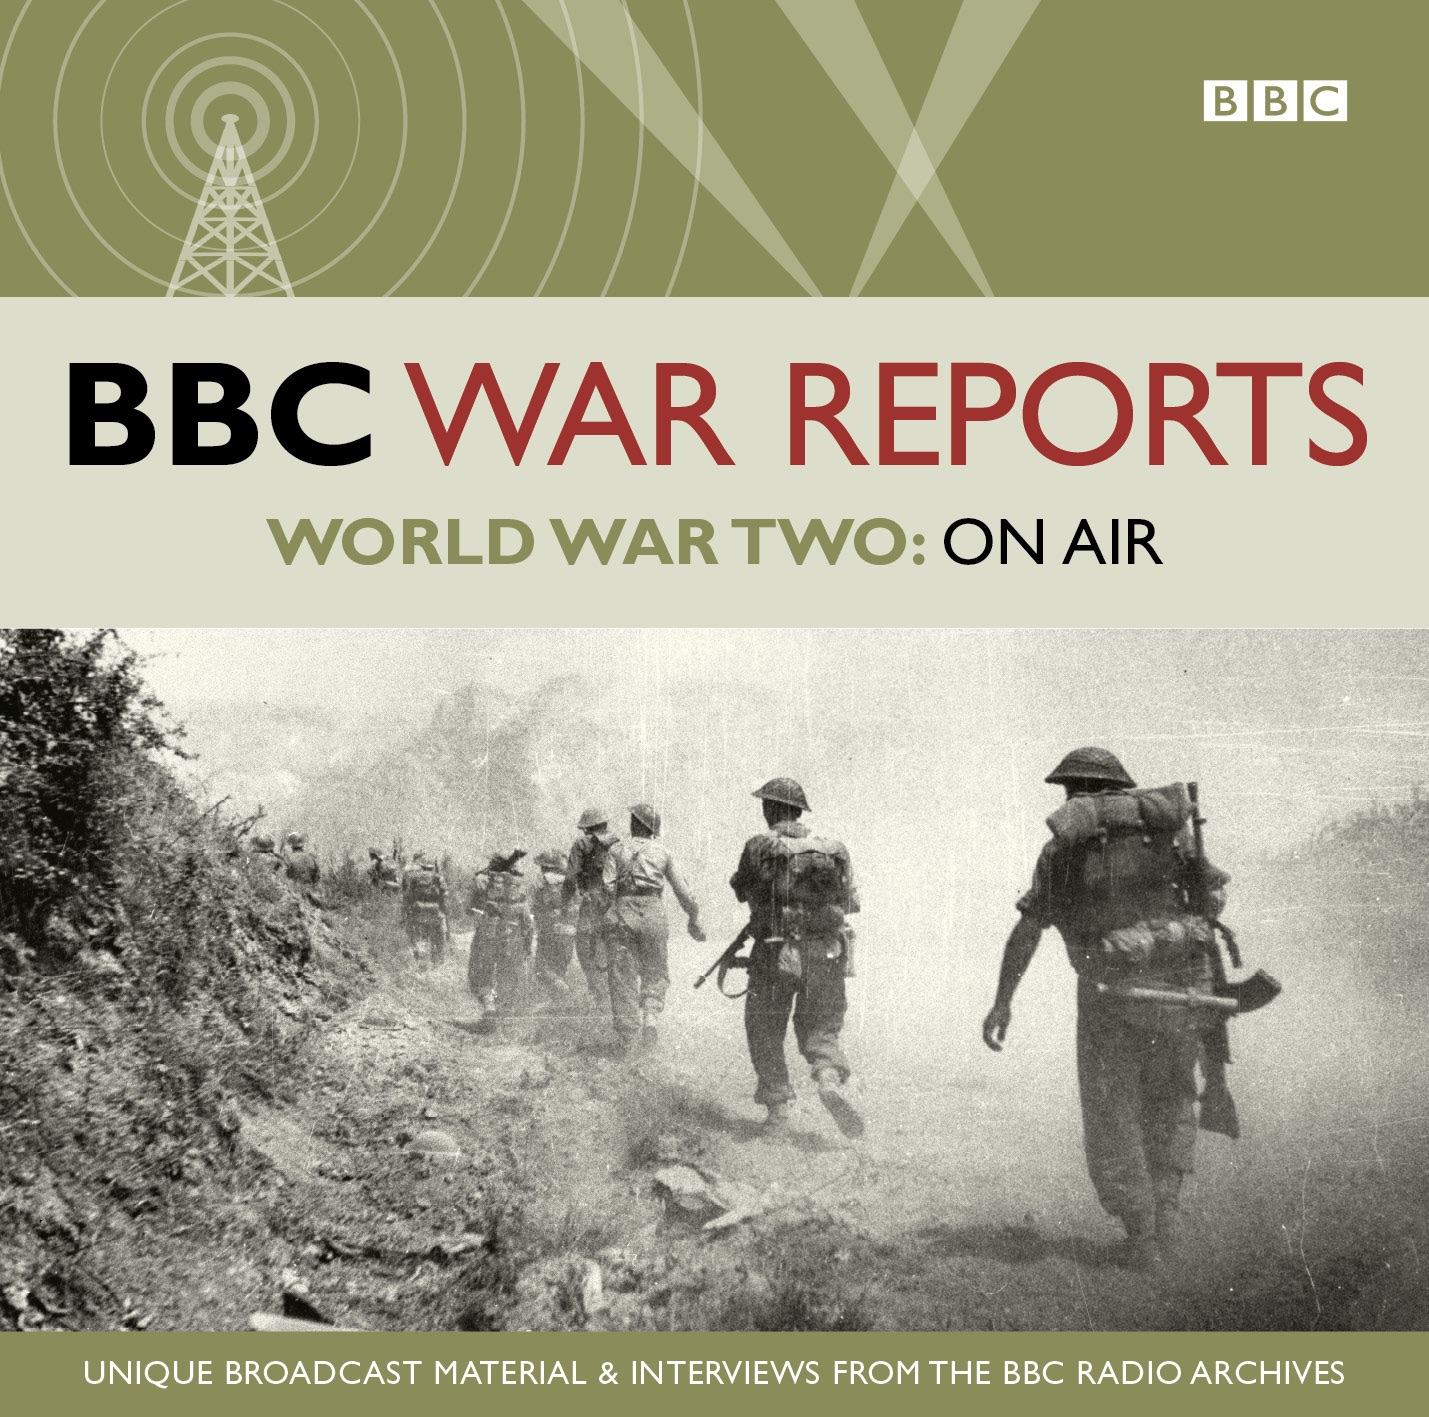 music in world war two As with all other walks of life, the first world war took its terrible toll on classical music, with many composers and performers dying in battle or left irrevocably scarred.